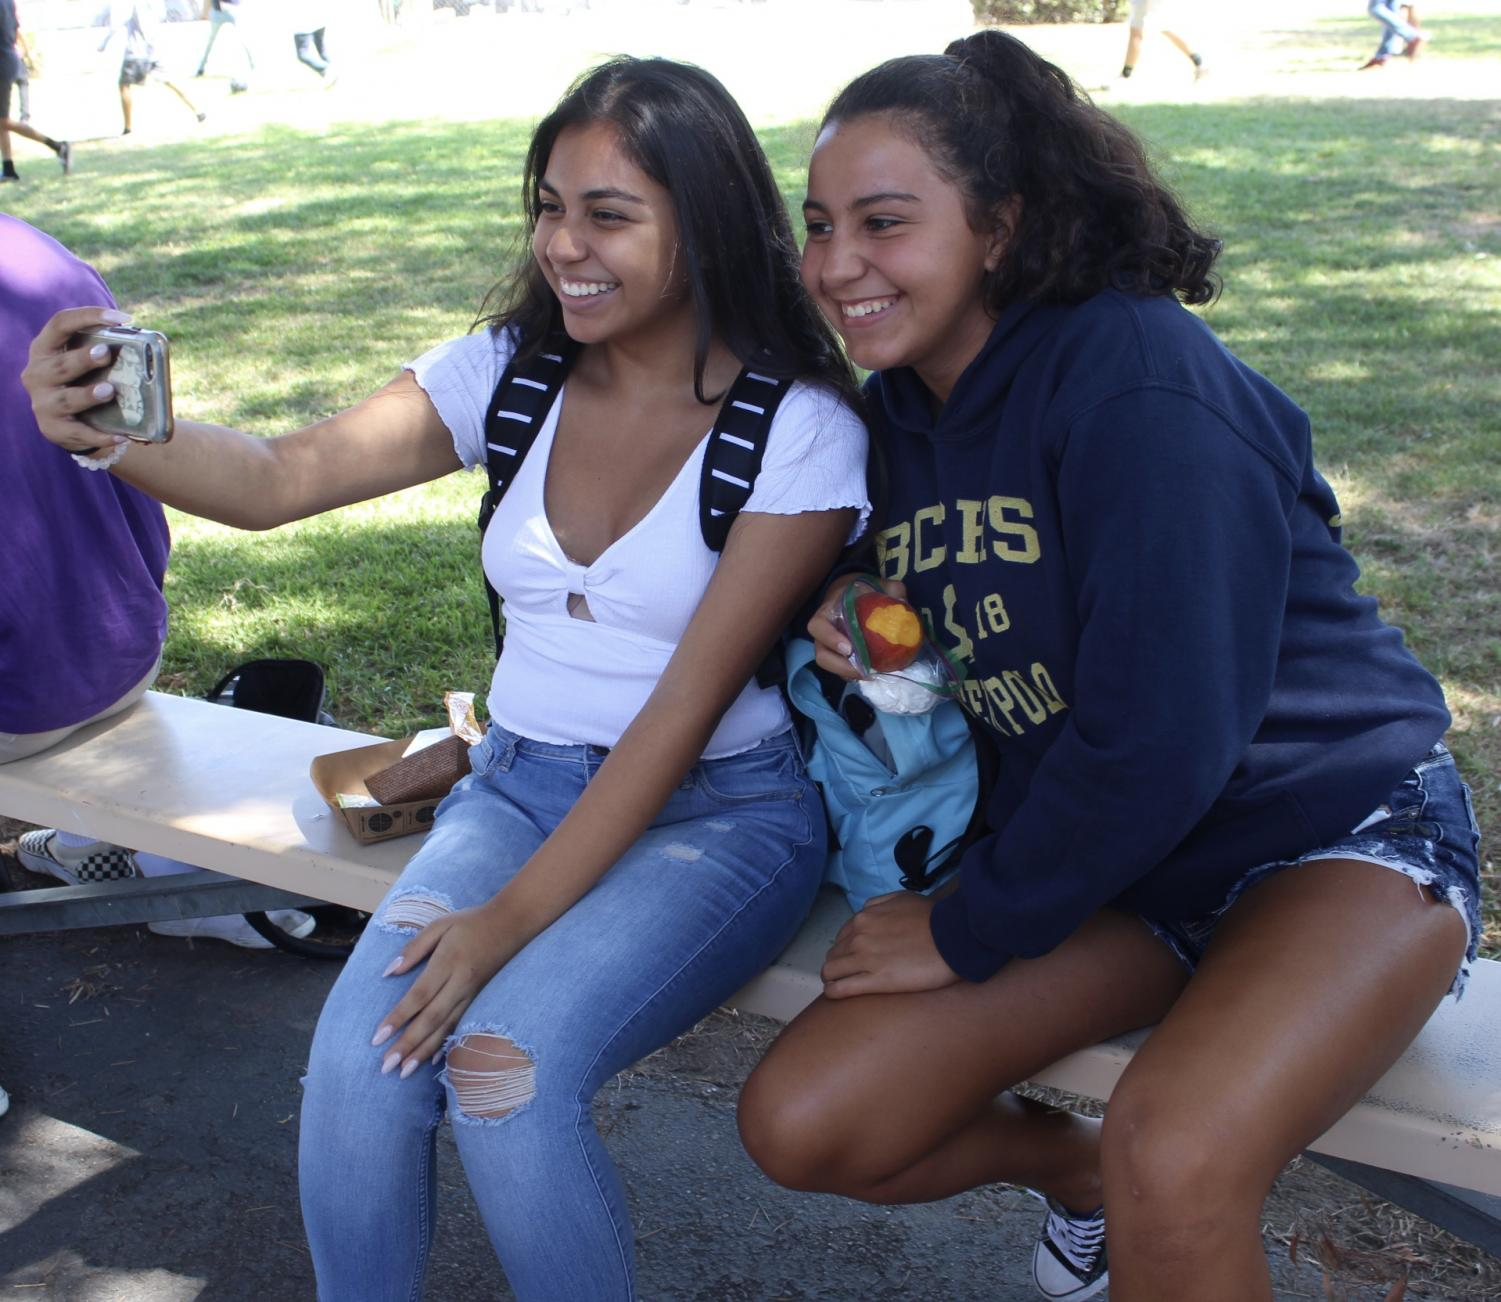 Sophomores+Sara+Marquez+and+Amelia+Sanchez+take+selfies+during+lunch+on+Sept.+13.+